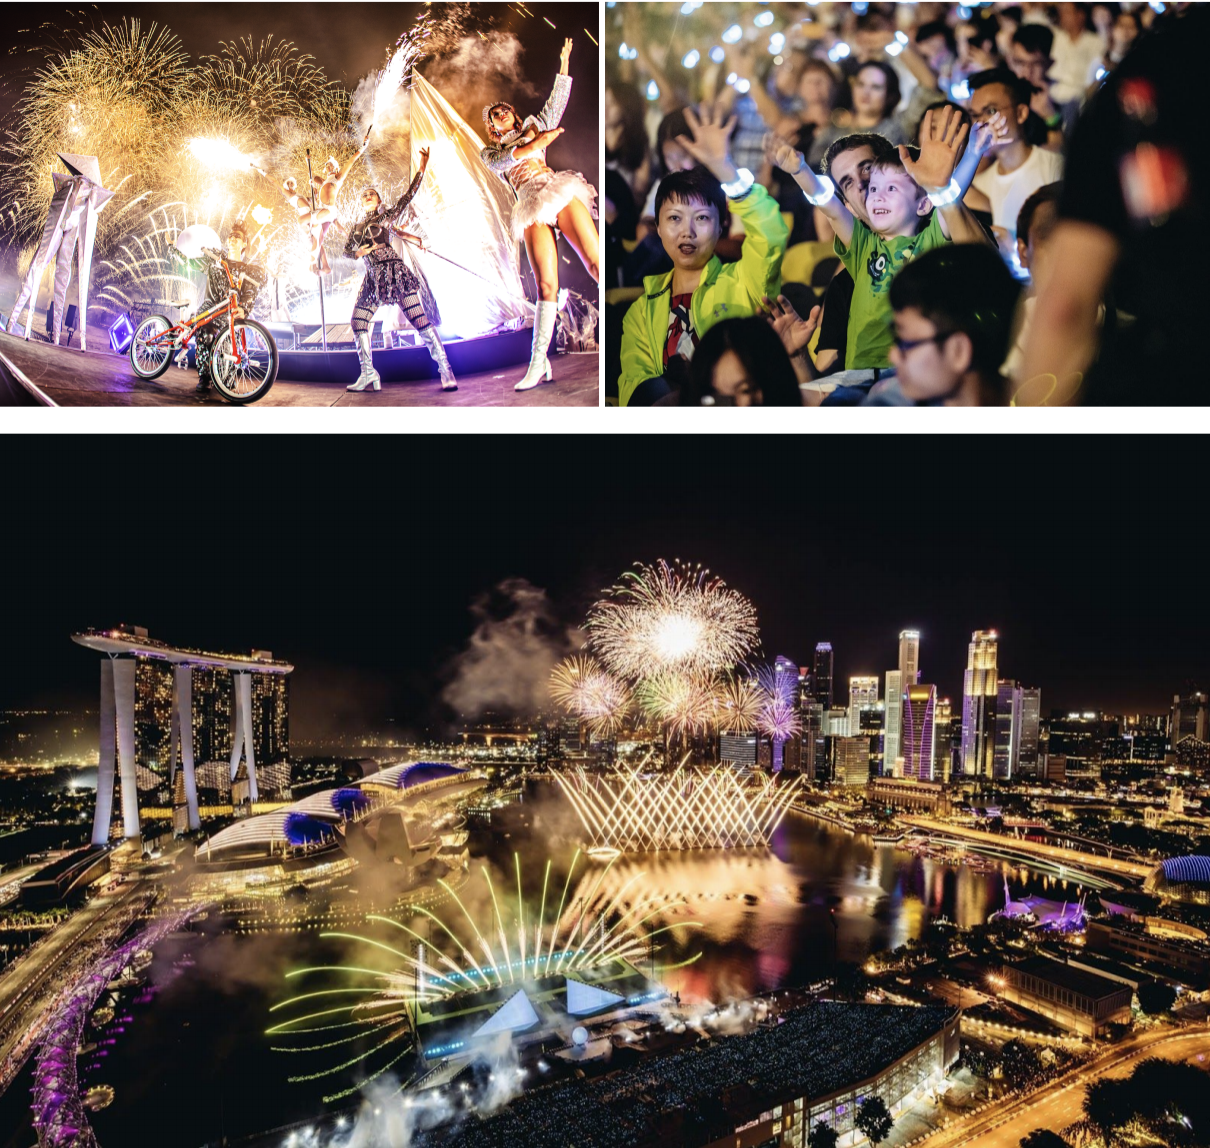 Clockwise from top left: Japanese hanabi synced with world-class performances: special individual LED wristbands for a more immersive show experience ; Breathtaking Japanese fireworks light up Singapore's skyline. Photo courtesy: Avex